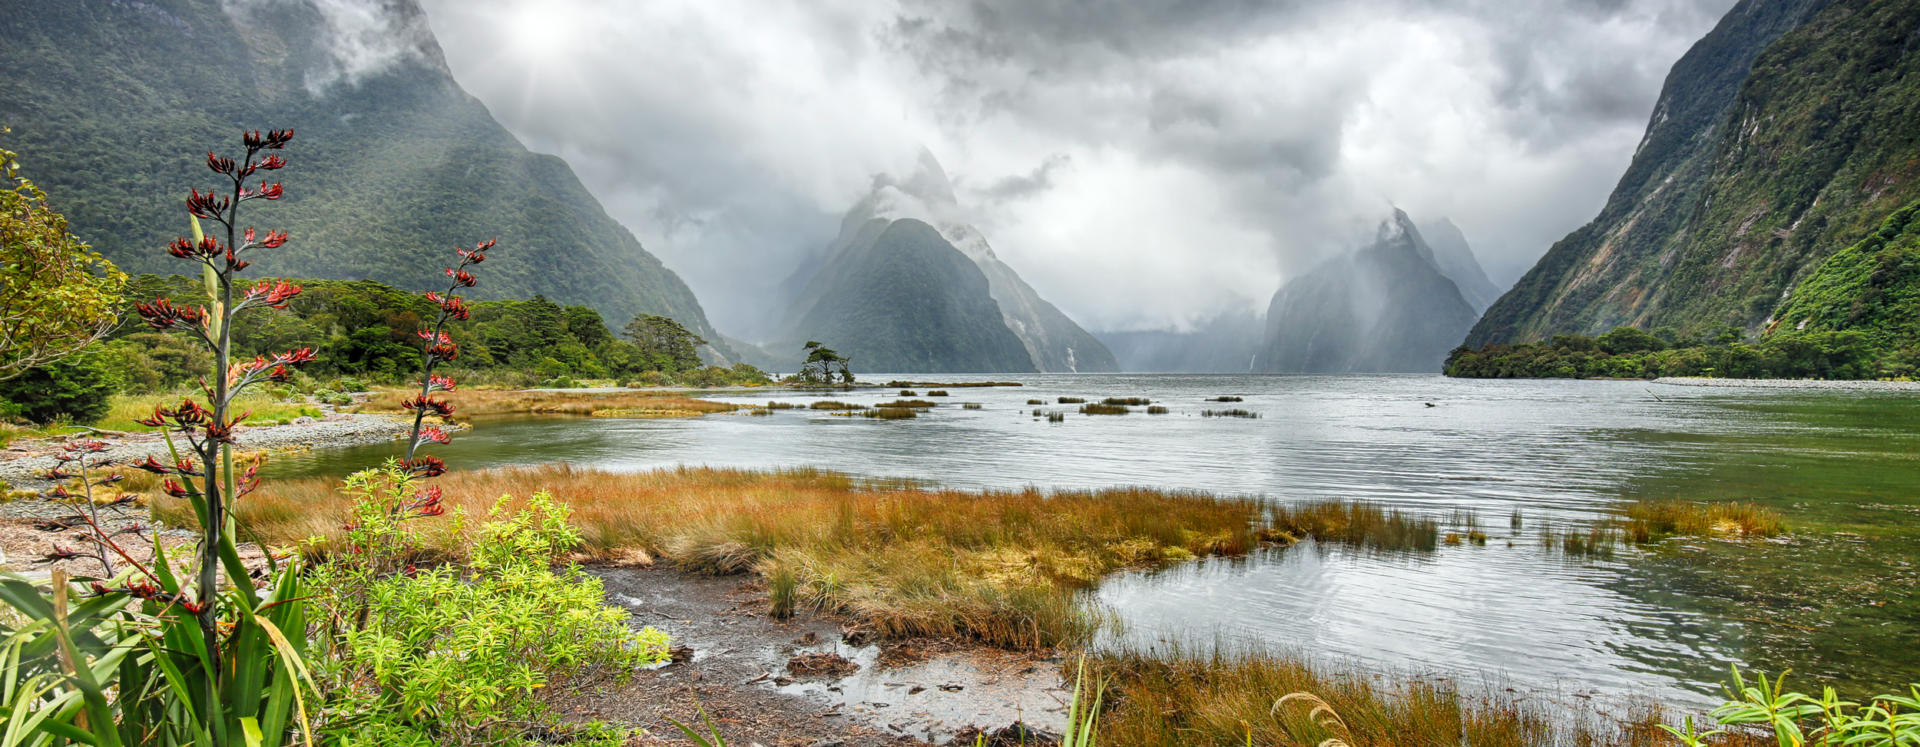 Southland Milford Sound 05 P